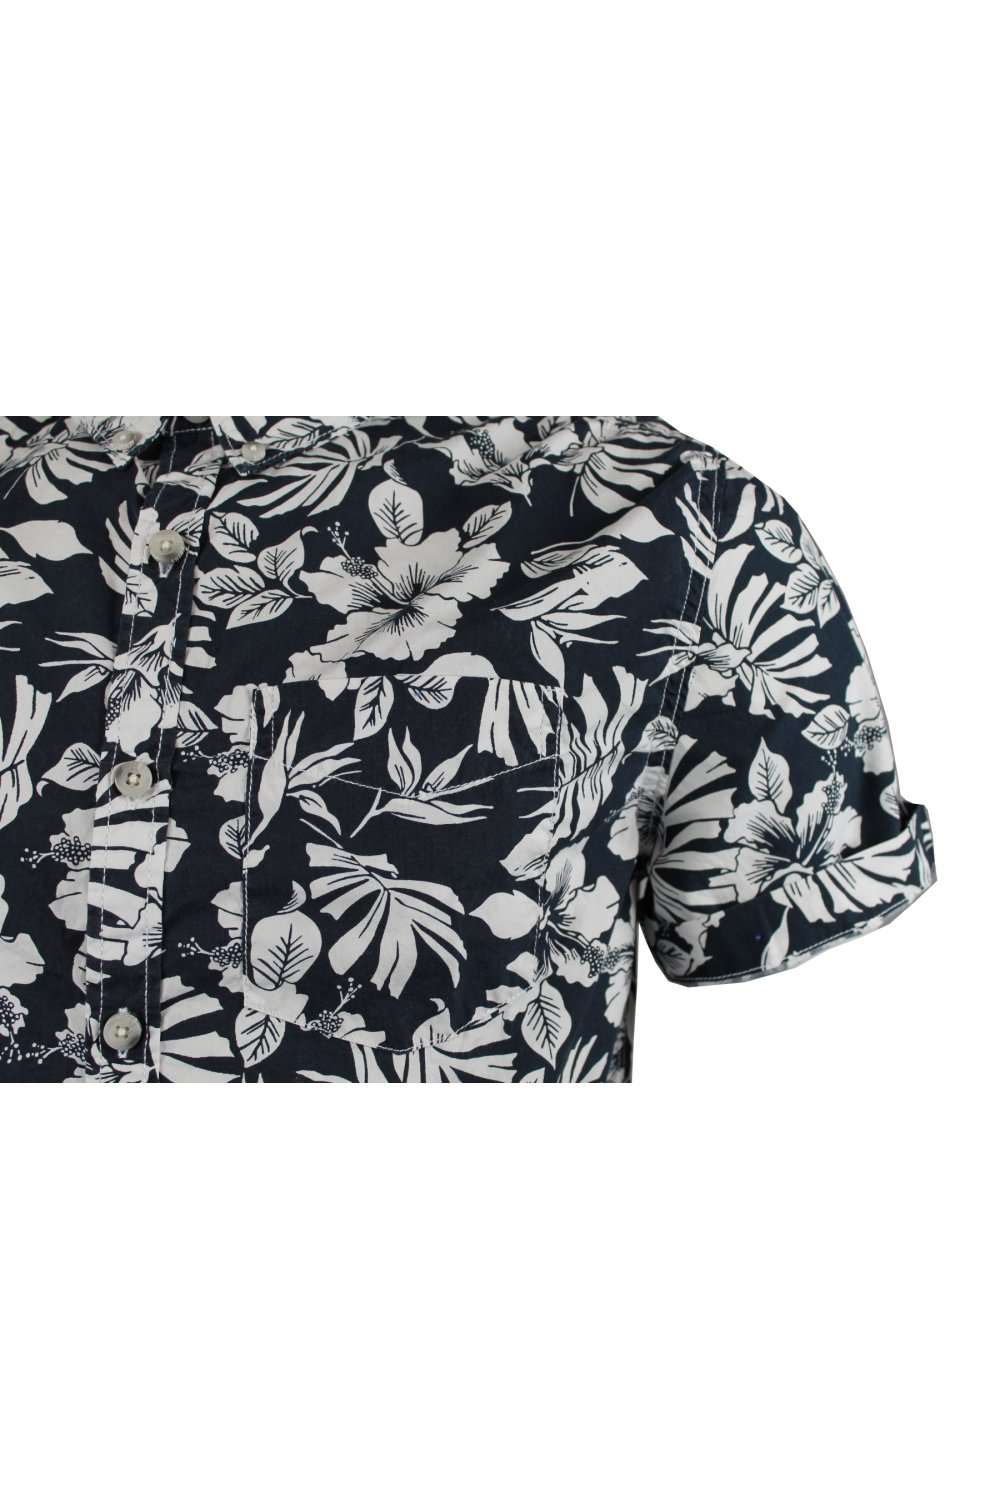 f702ed8cb4 Superdry Southbank Surf Shirt (Great White Hibiscus) - T-Shirts from ...